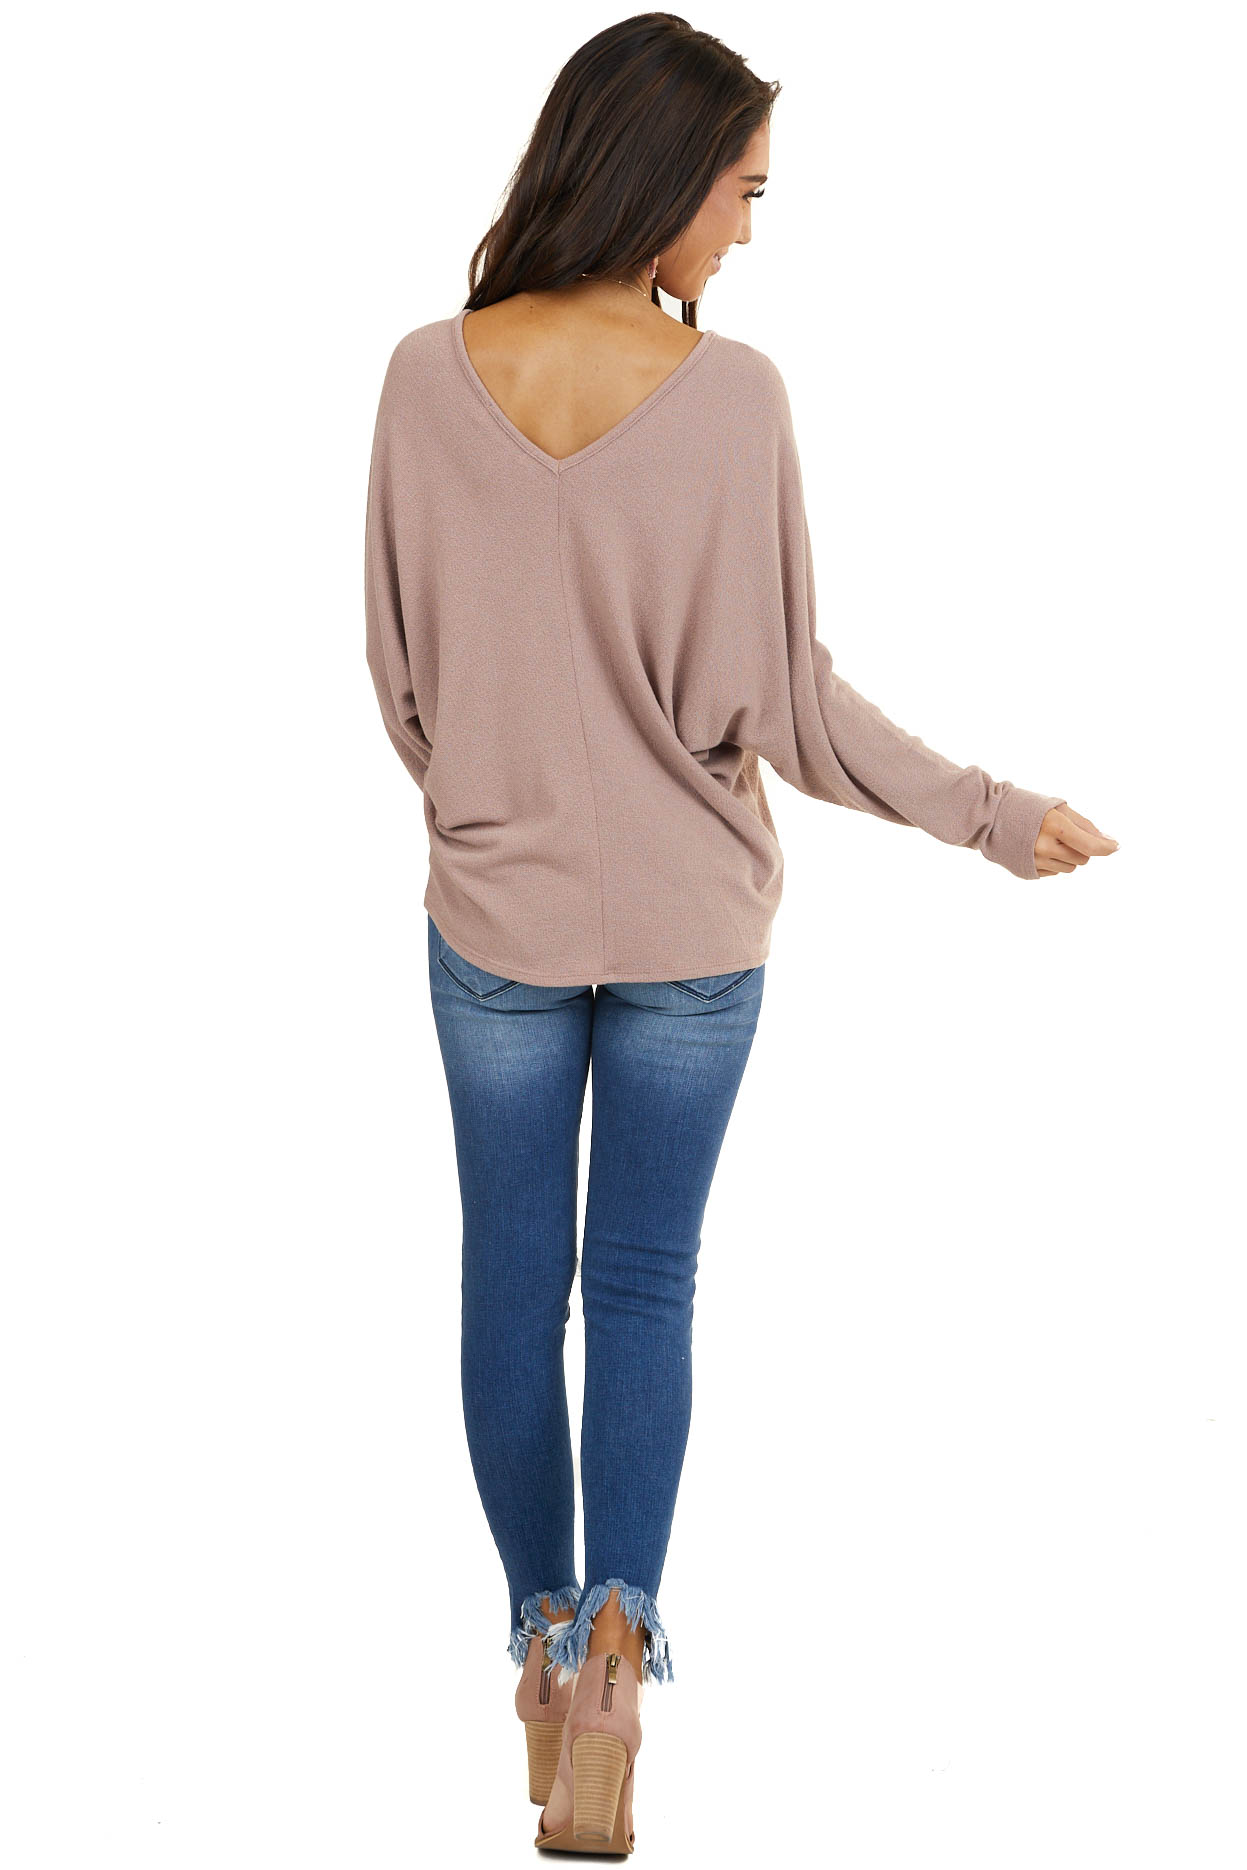 Dusty Rose V Neck Top with Dolman Sleeves and Center Seam